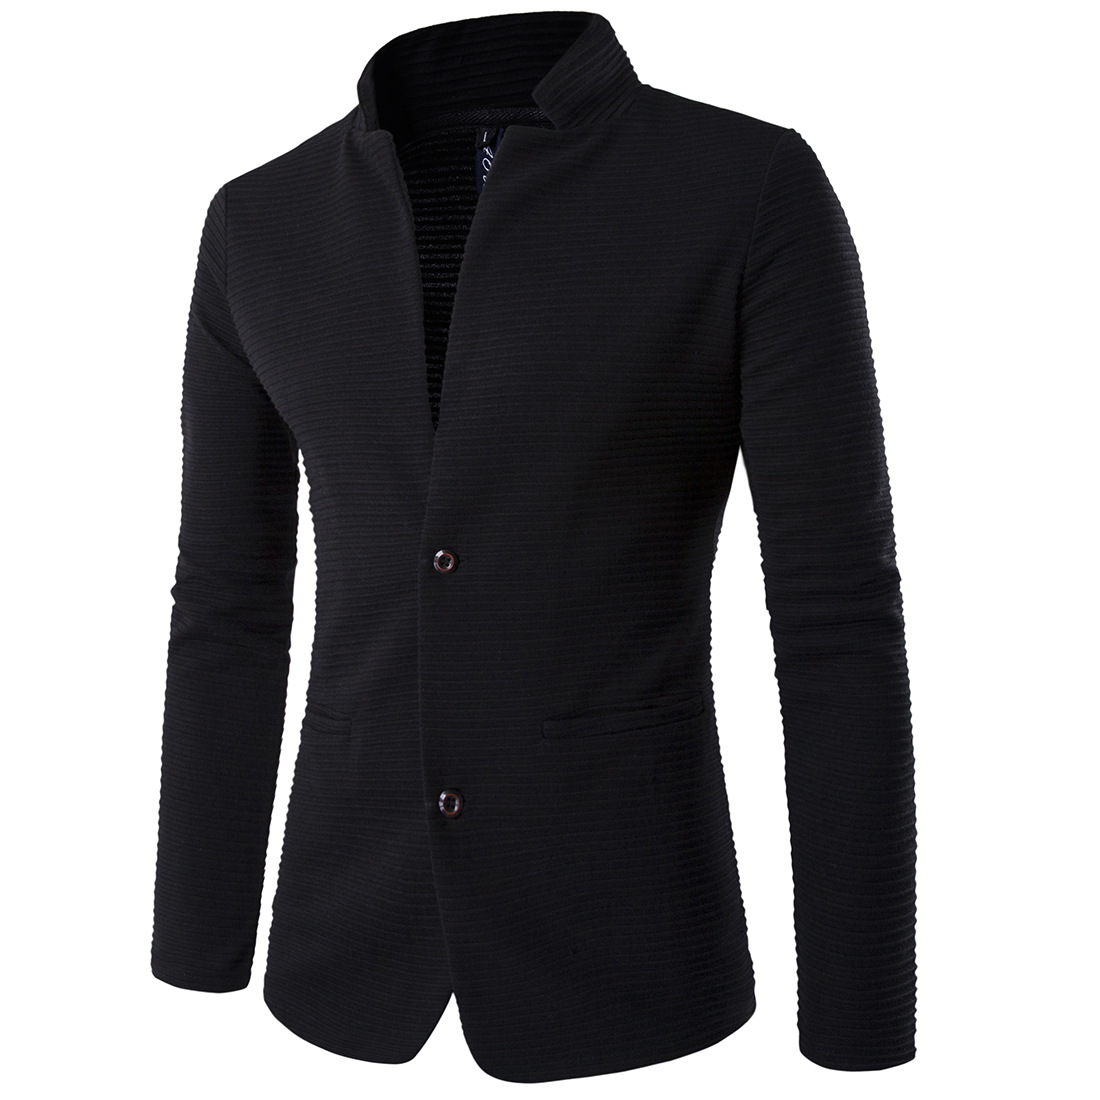 Jackets For Men Slim Fit Fashion Suits Blazer Business Coats Jacket Long Sleeve Tops Men Casual Daily Vintage Fall Winter Blazer